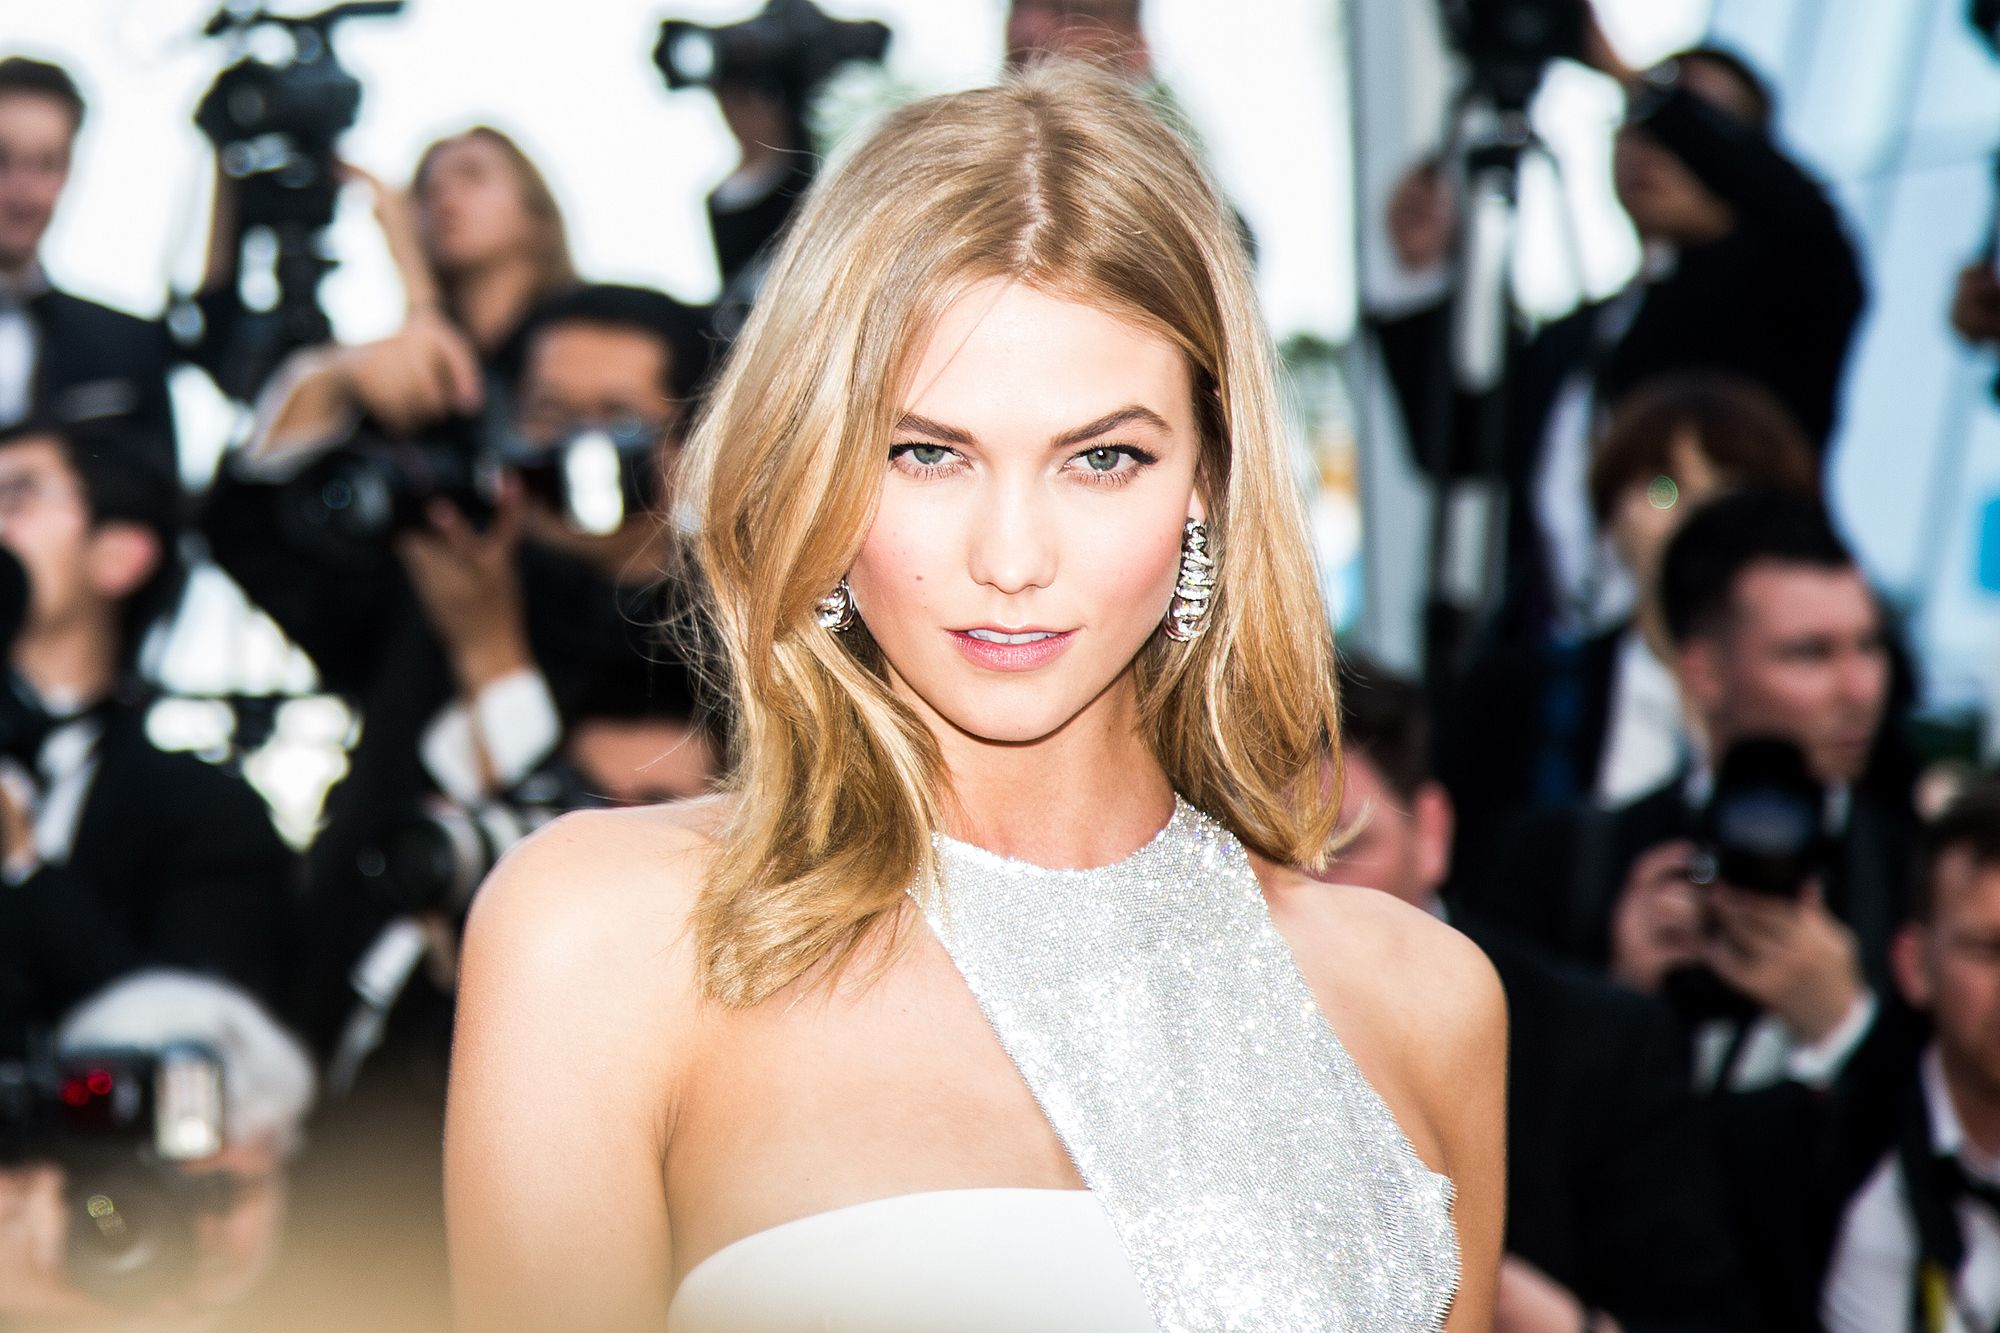 Karlie Kloss YouTube